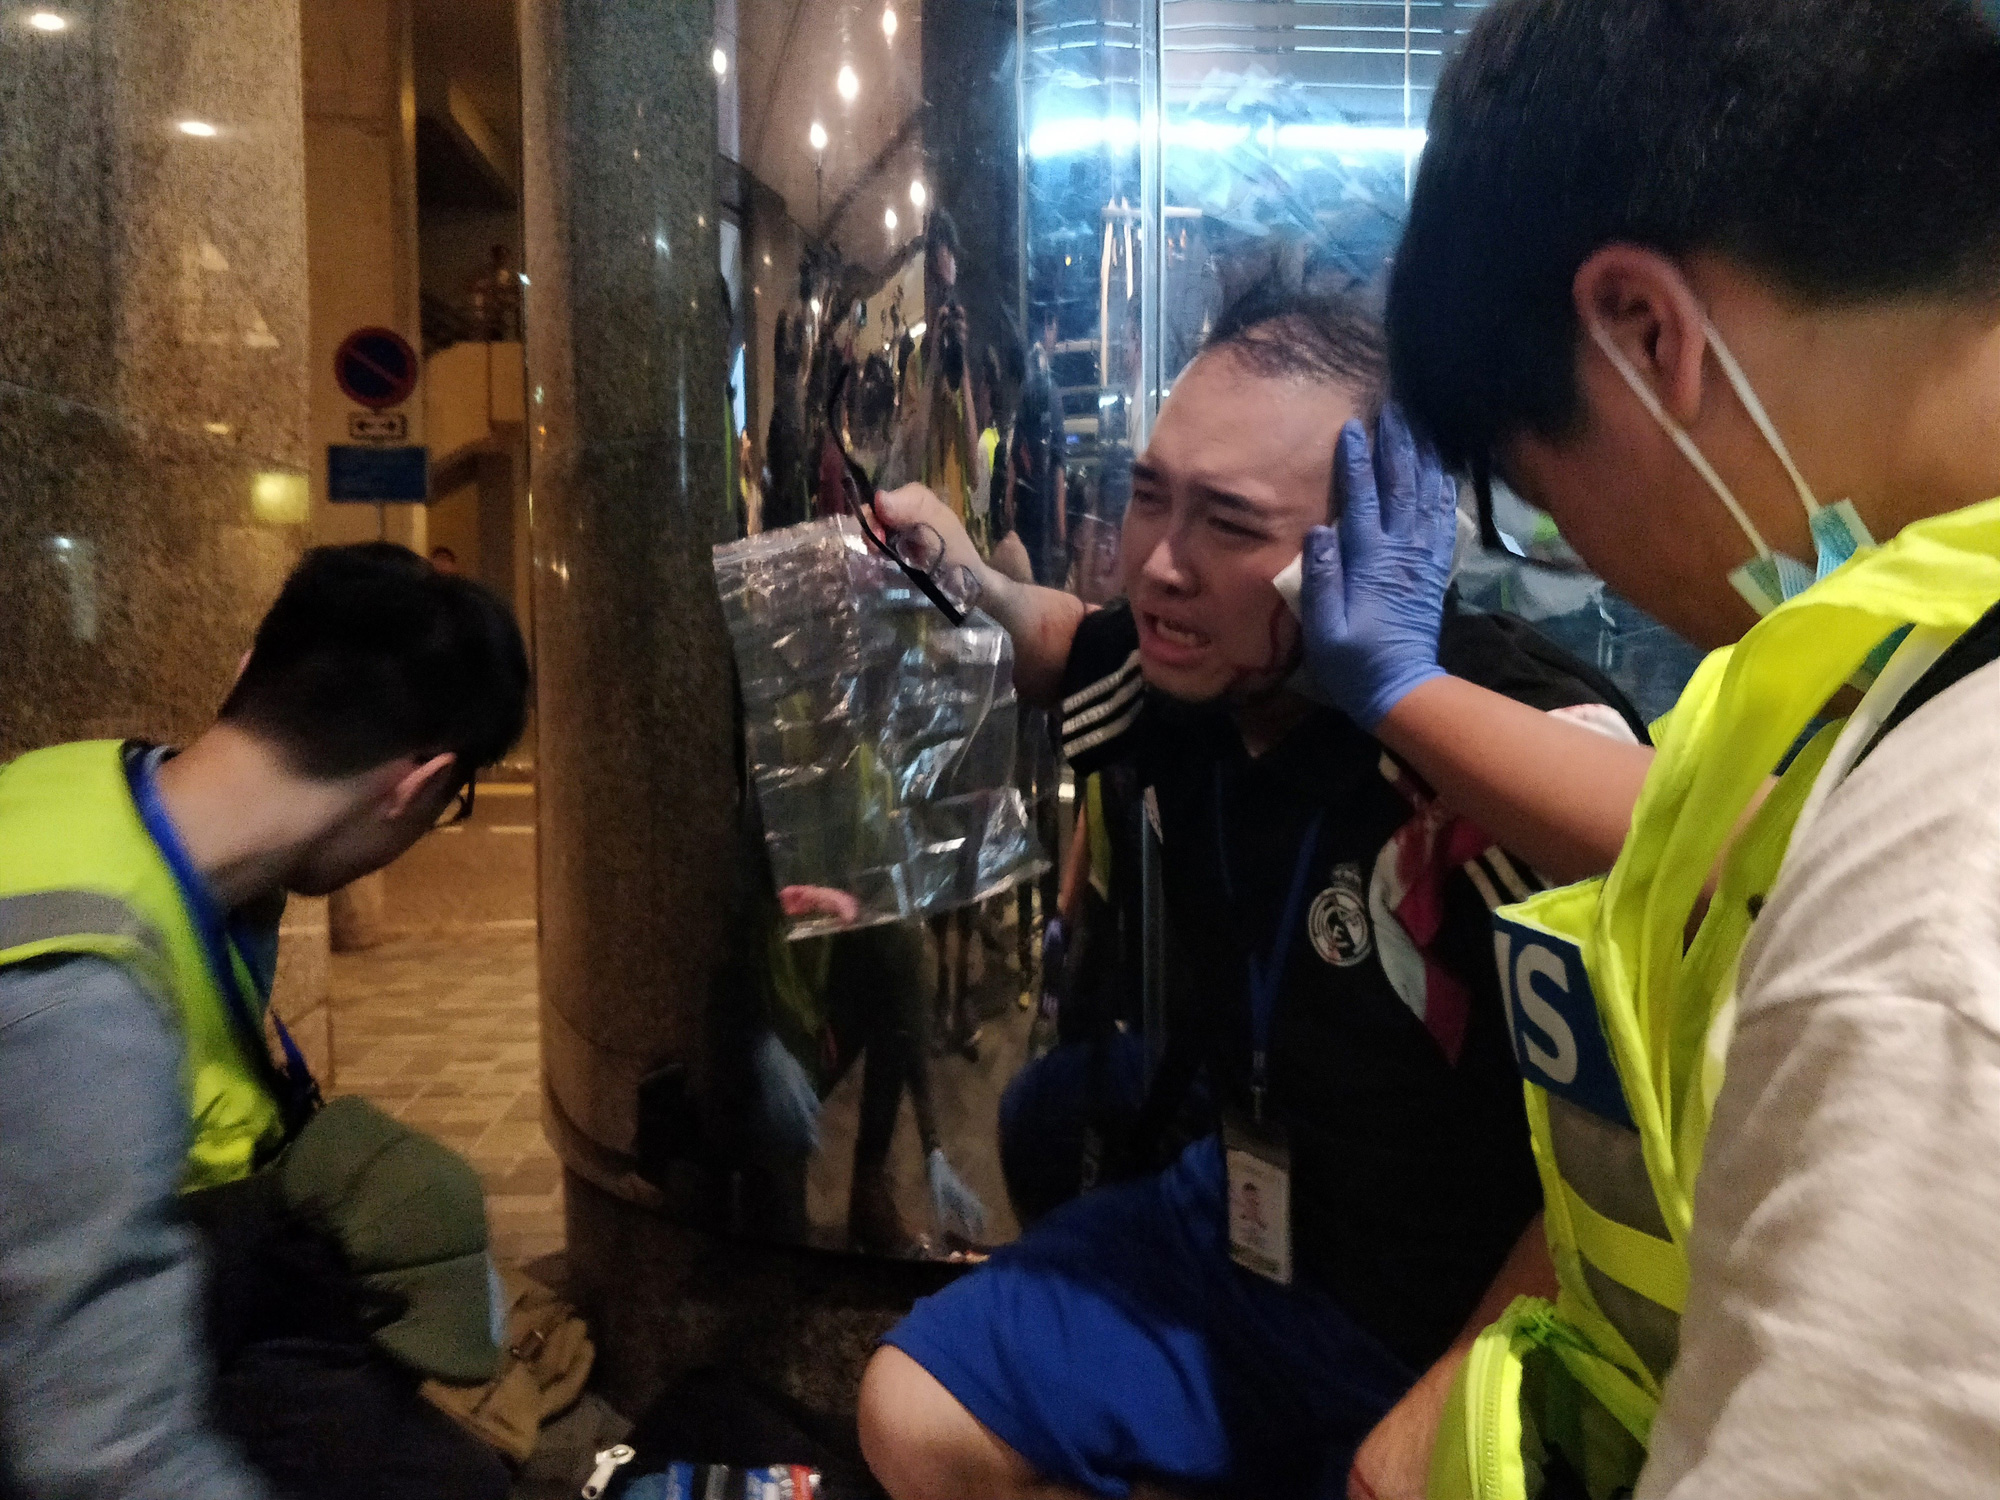 Andrew Chiu Ka Yin, District Councillor of Taikoo Shing West, receives help from first aid volunteers after sustaining an injury in a knife attack at a shopping mall, in Taikoo Shing in Hong Kong, China November 3, 2019. REUTERS/Stringer TAIWAN OUT. NO COMMERCIAL OR EDITORIAL SALES IN TAIWAN, HONG KONG OUT. NO COMMERCIAL OR EDITORIAL SALES IN HONG KONG. NO RESALES. NO ARCHIVES